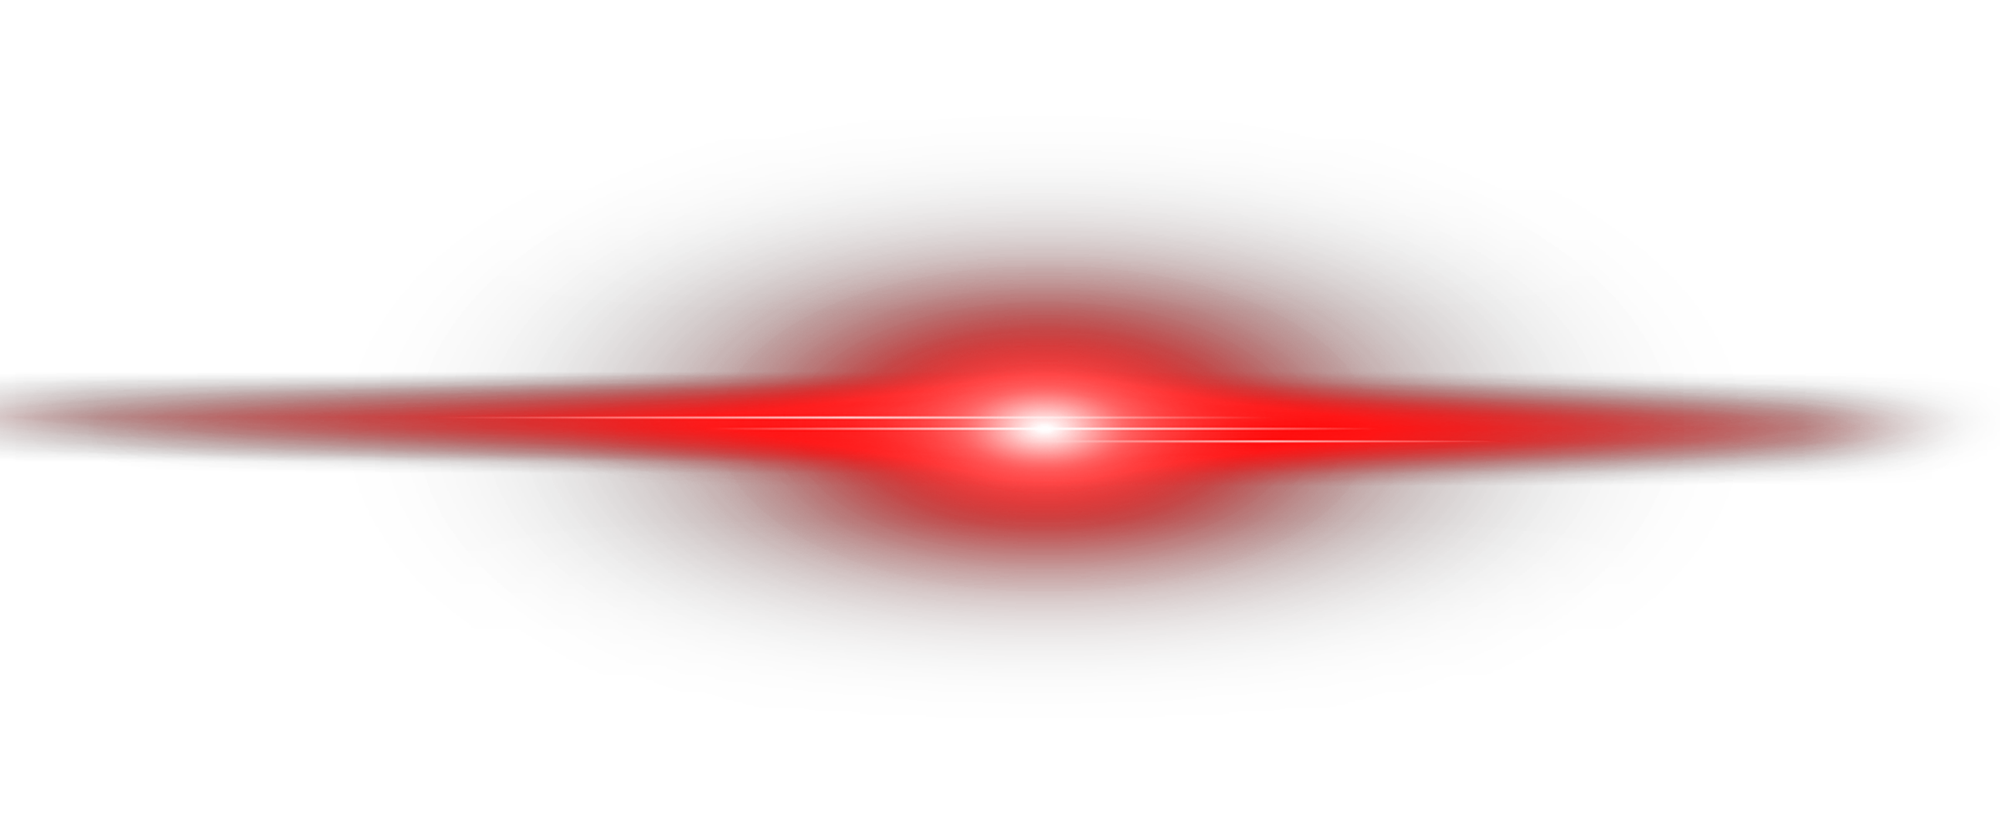 red glow png